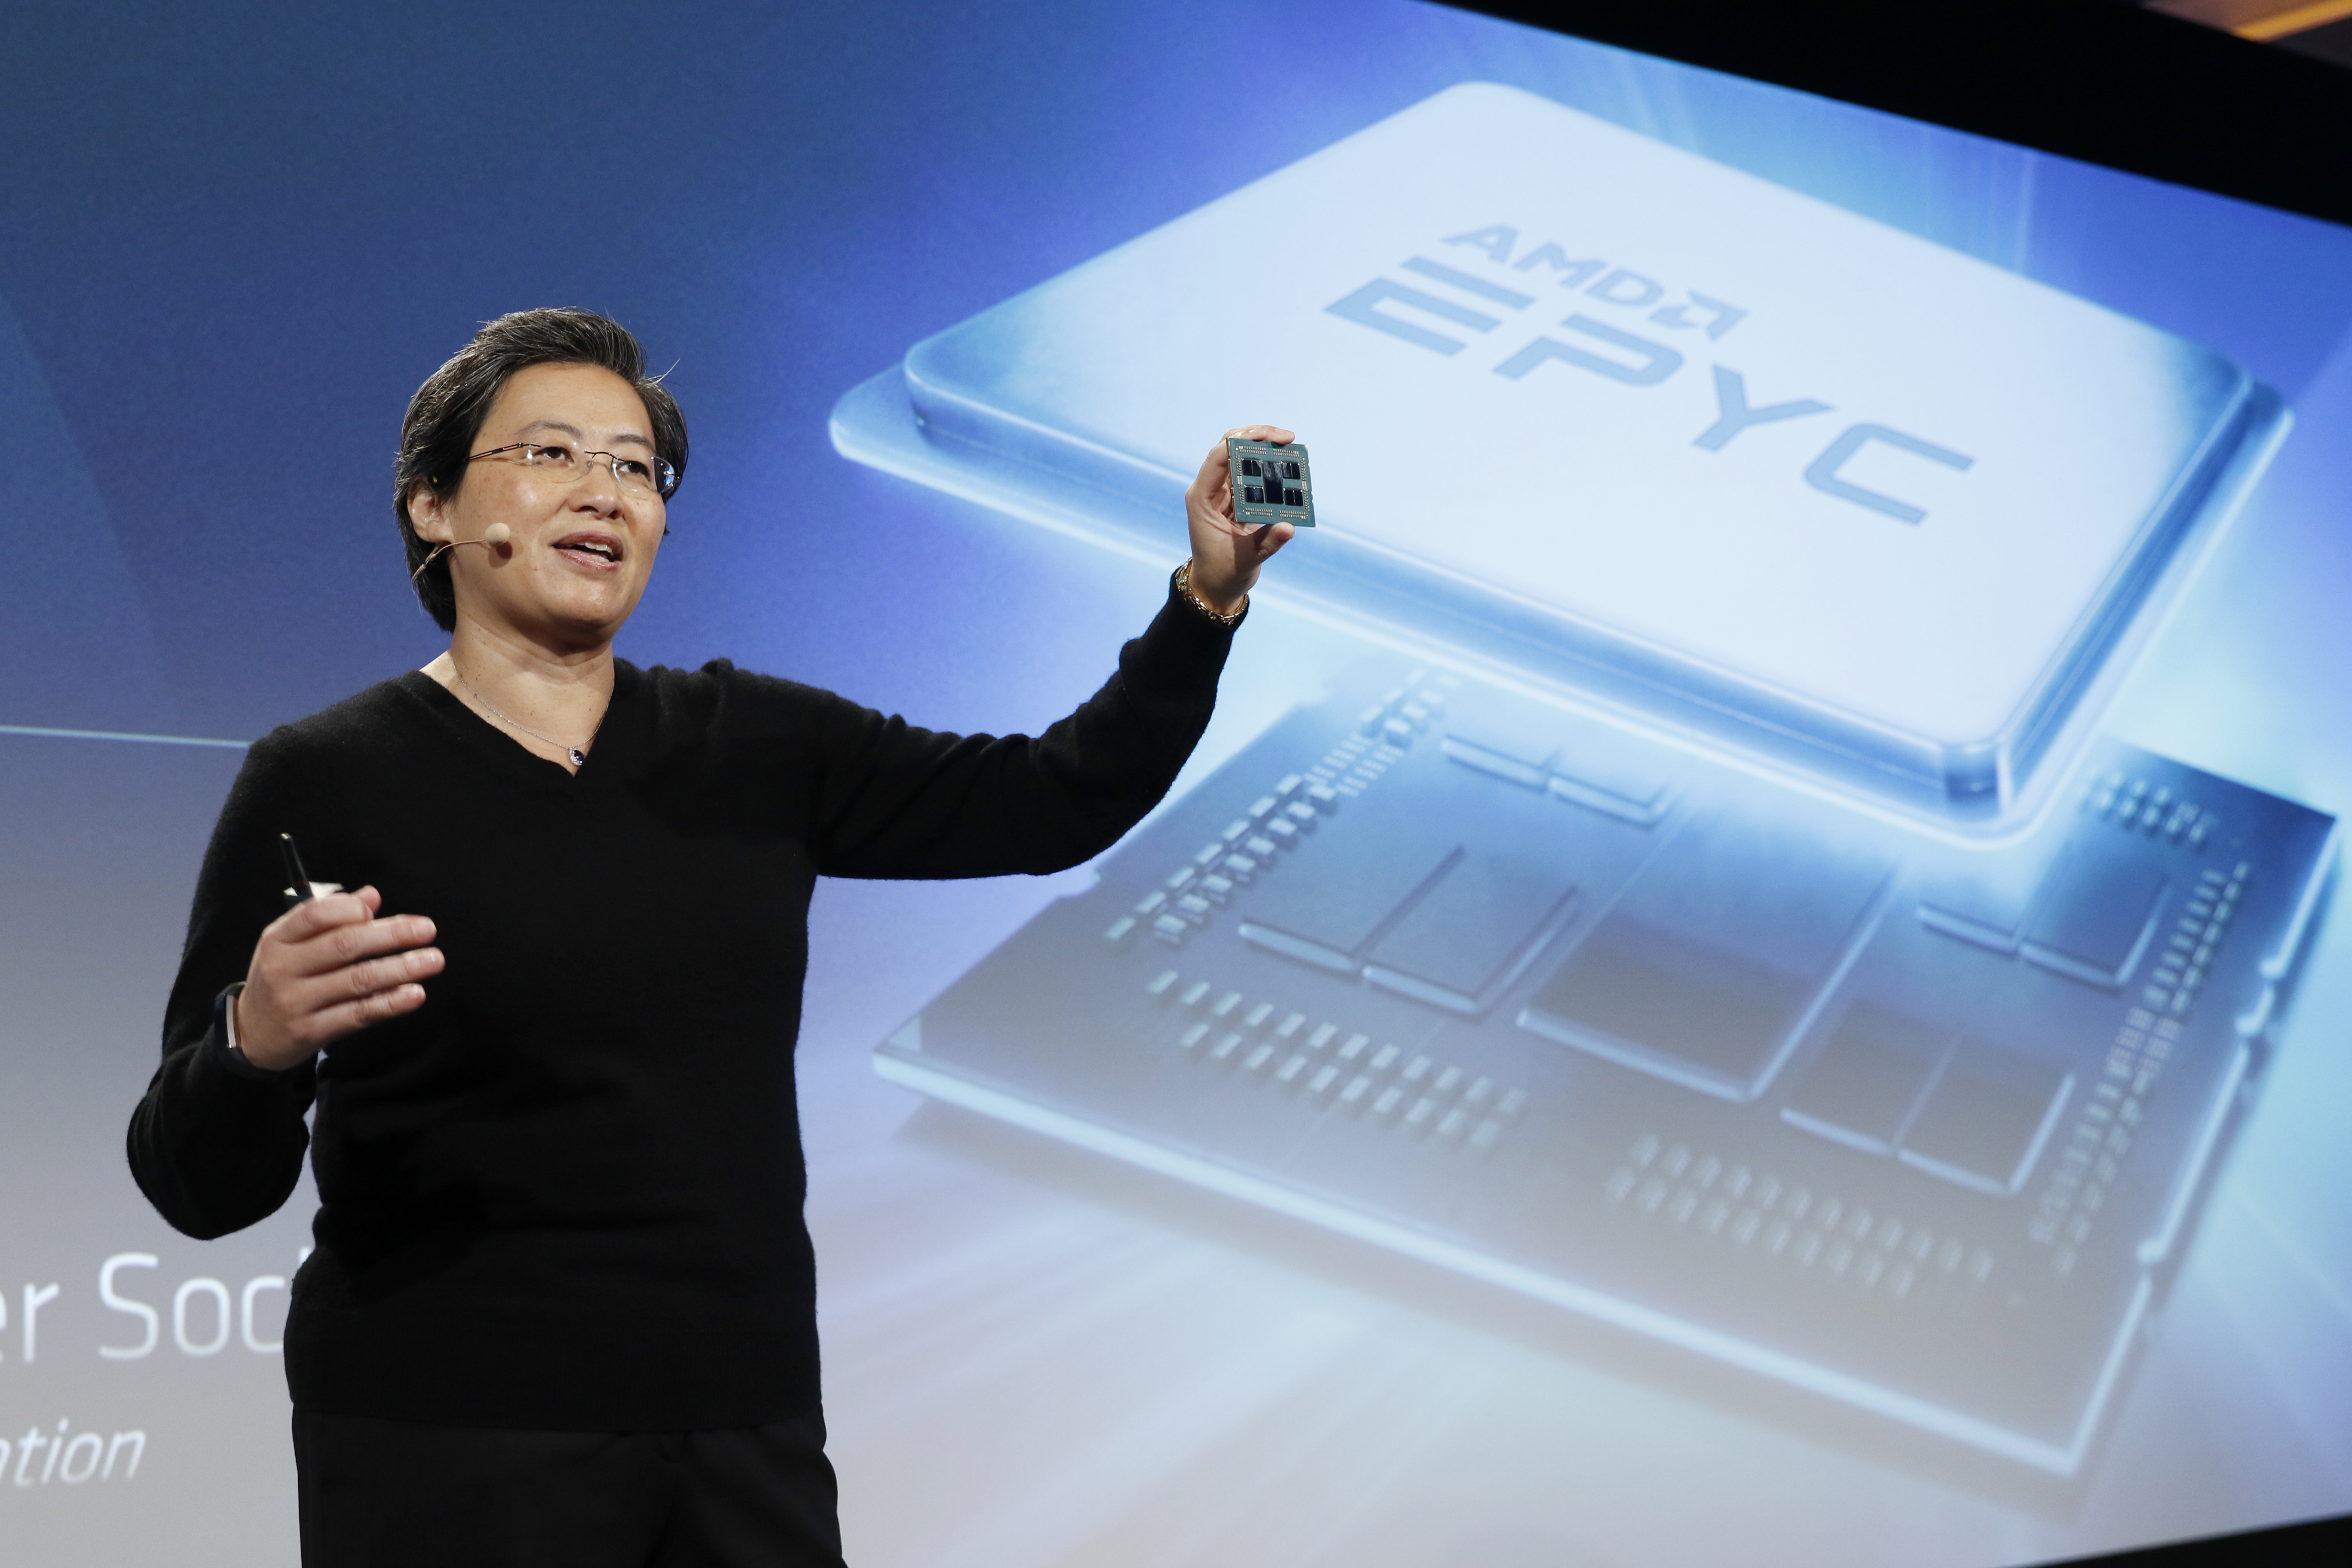 AMD President and CEO Dr. Lisa Su reveals the company's next-generation EPYC™ server processor at the AMD Next Horizon event in San Francisco on November 6, 2018